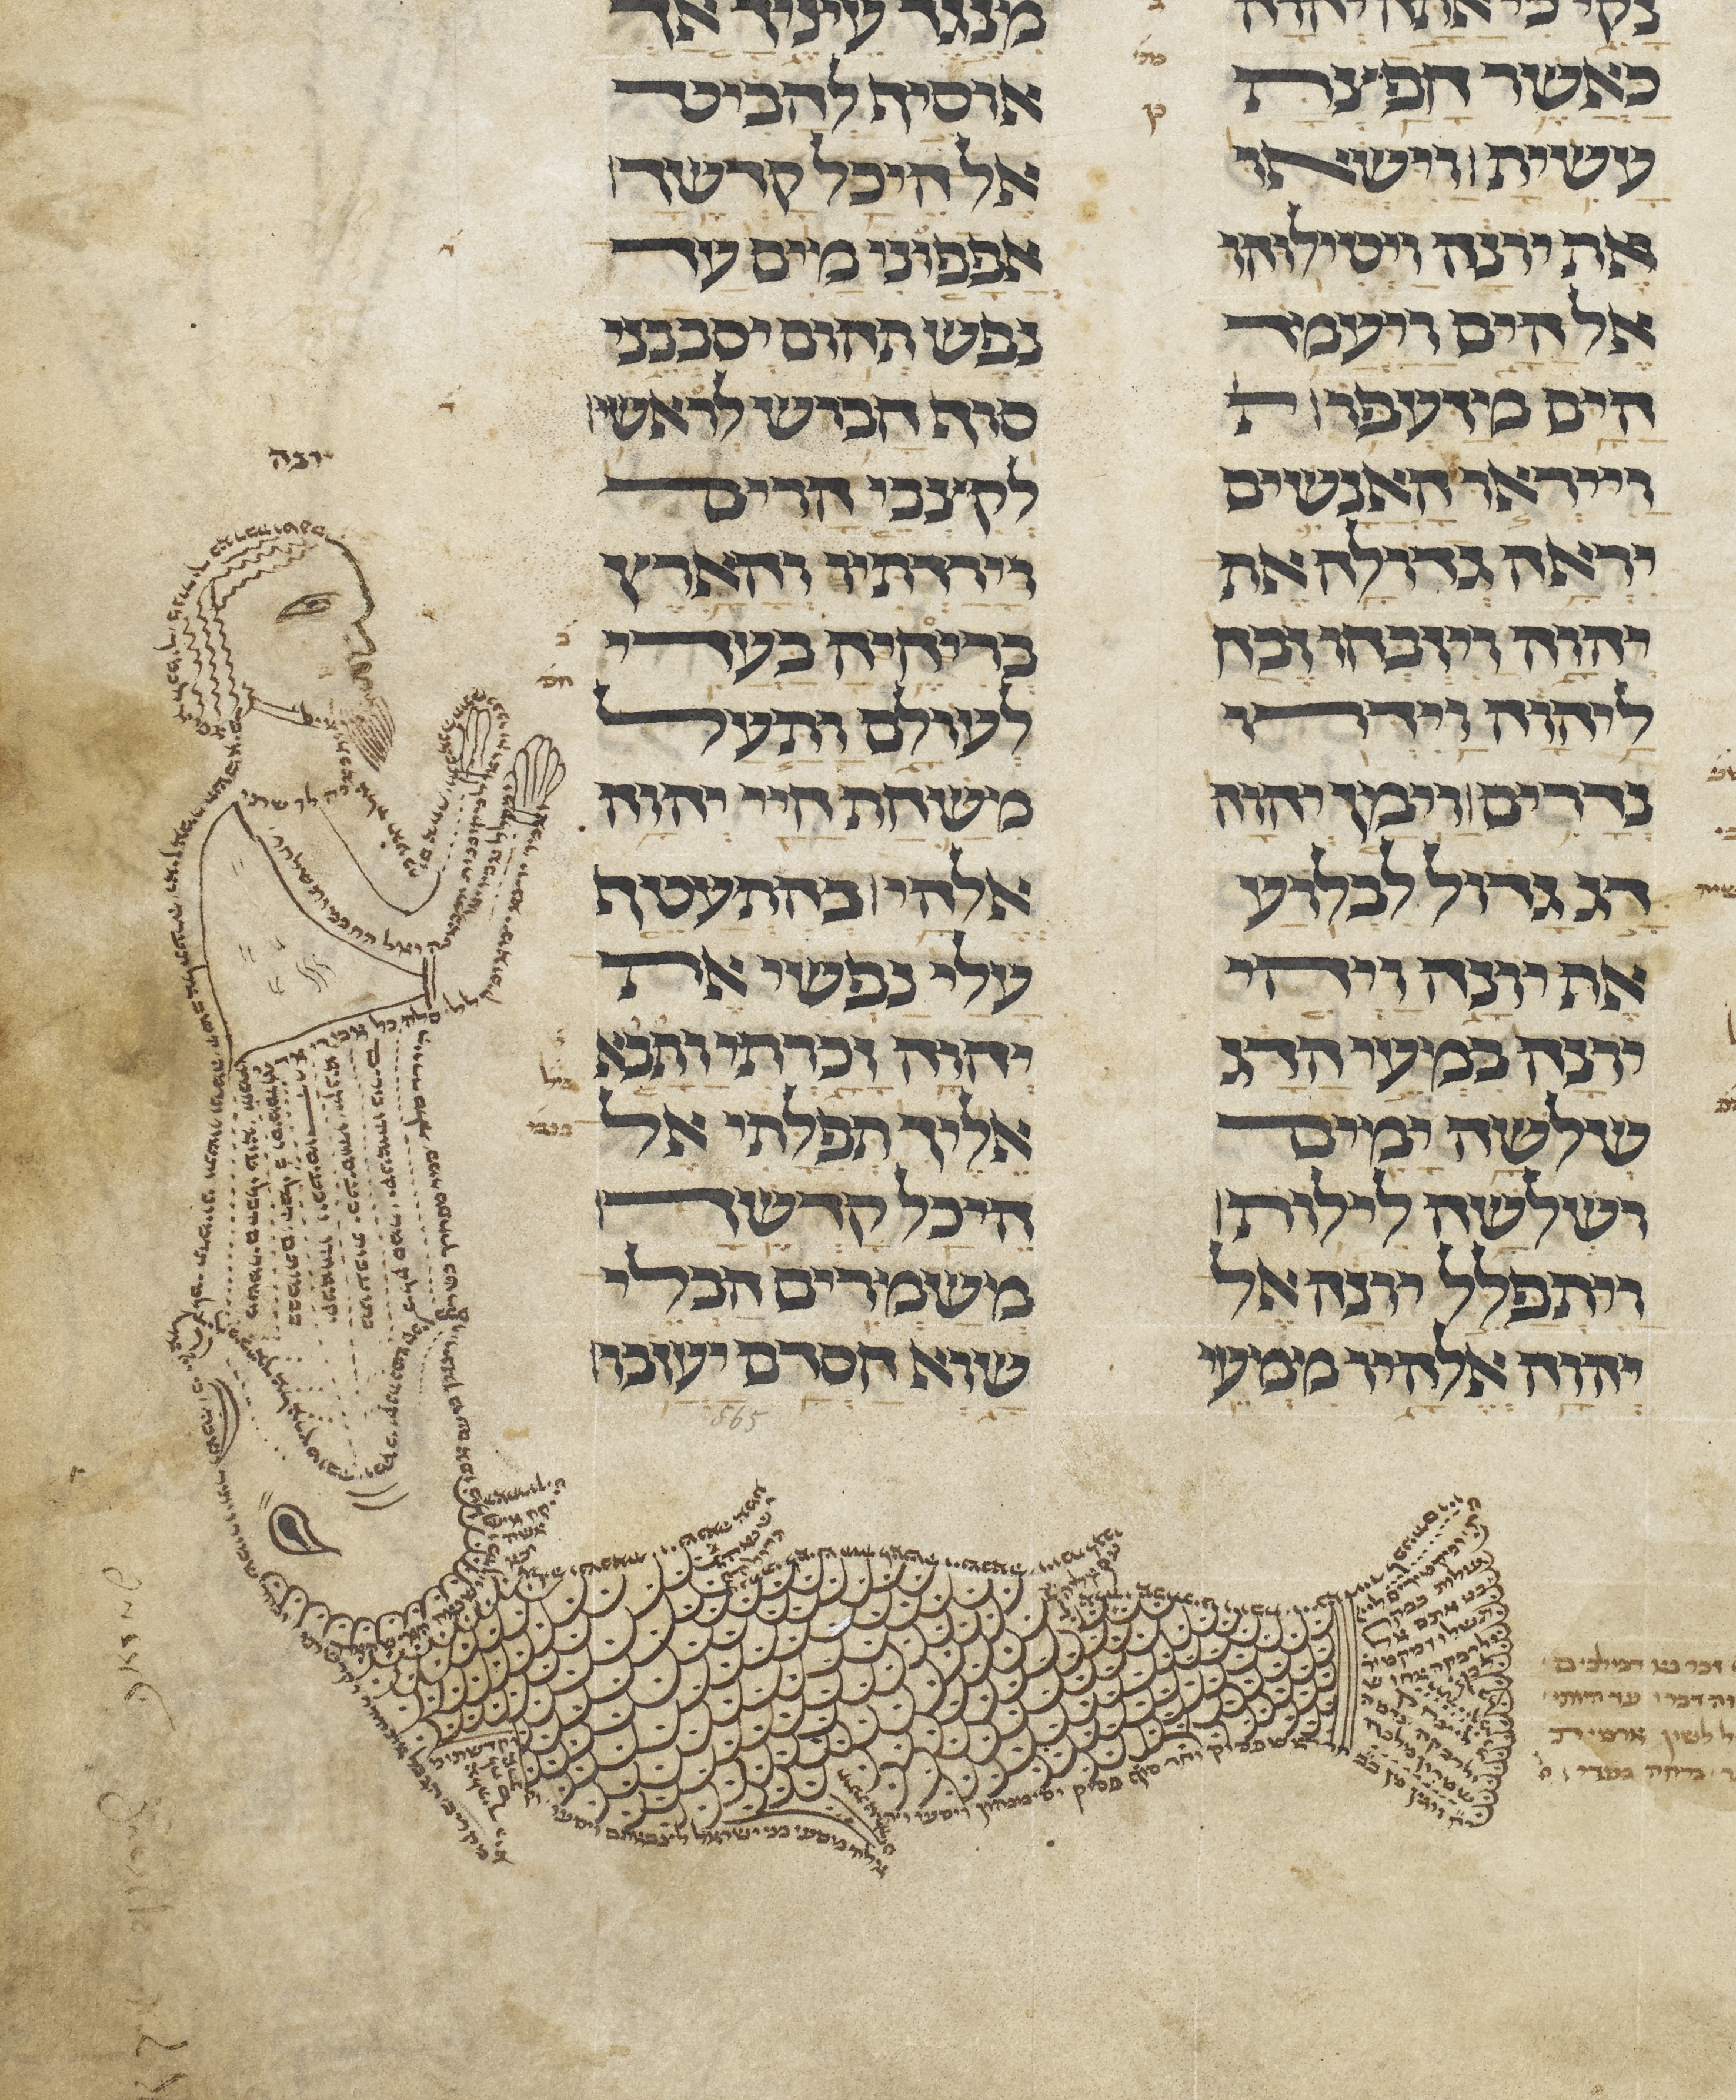 Micrographic image of Jonah in the fish's mouth, the Yonah Pentateuch, Germany 14th Century. (Add MS 21160 f.292r). British Library.